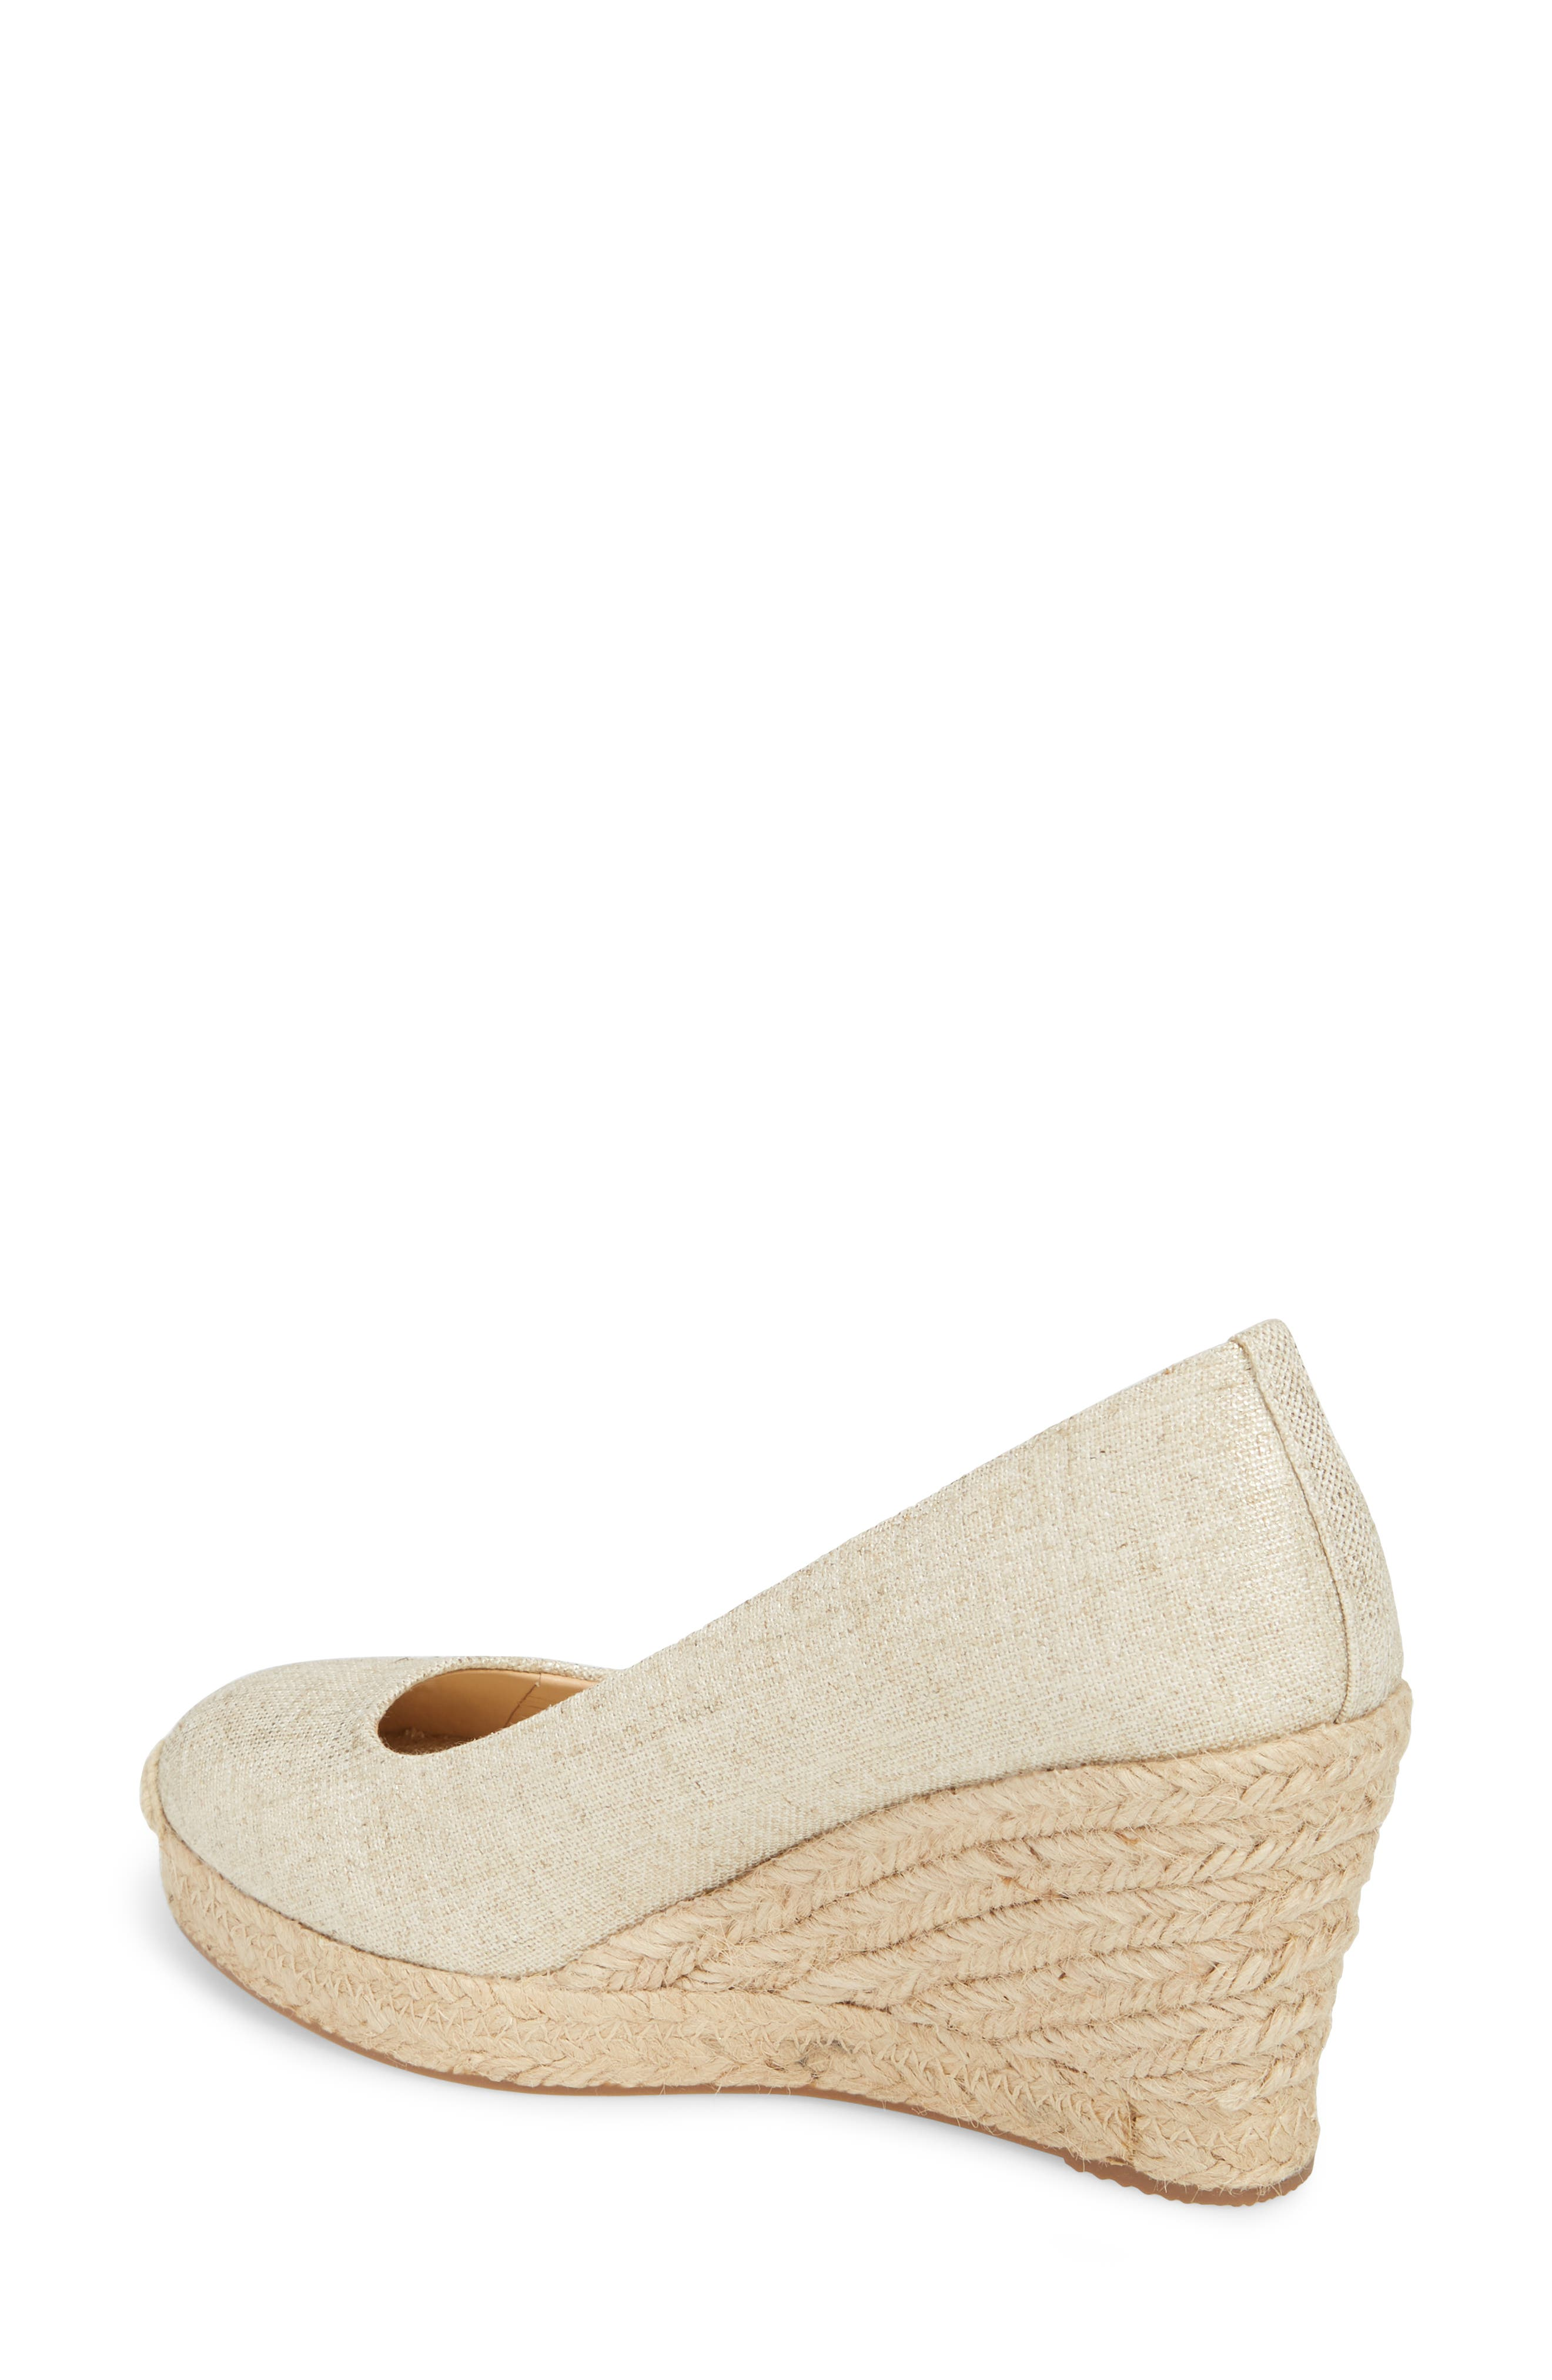 Seville Espadrille Wedge,                             Alternate thumbnail 2, color,                             710